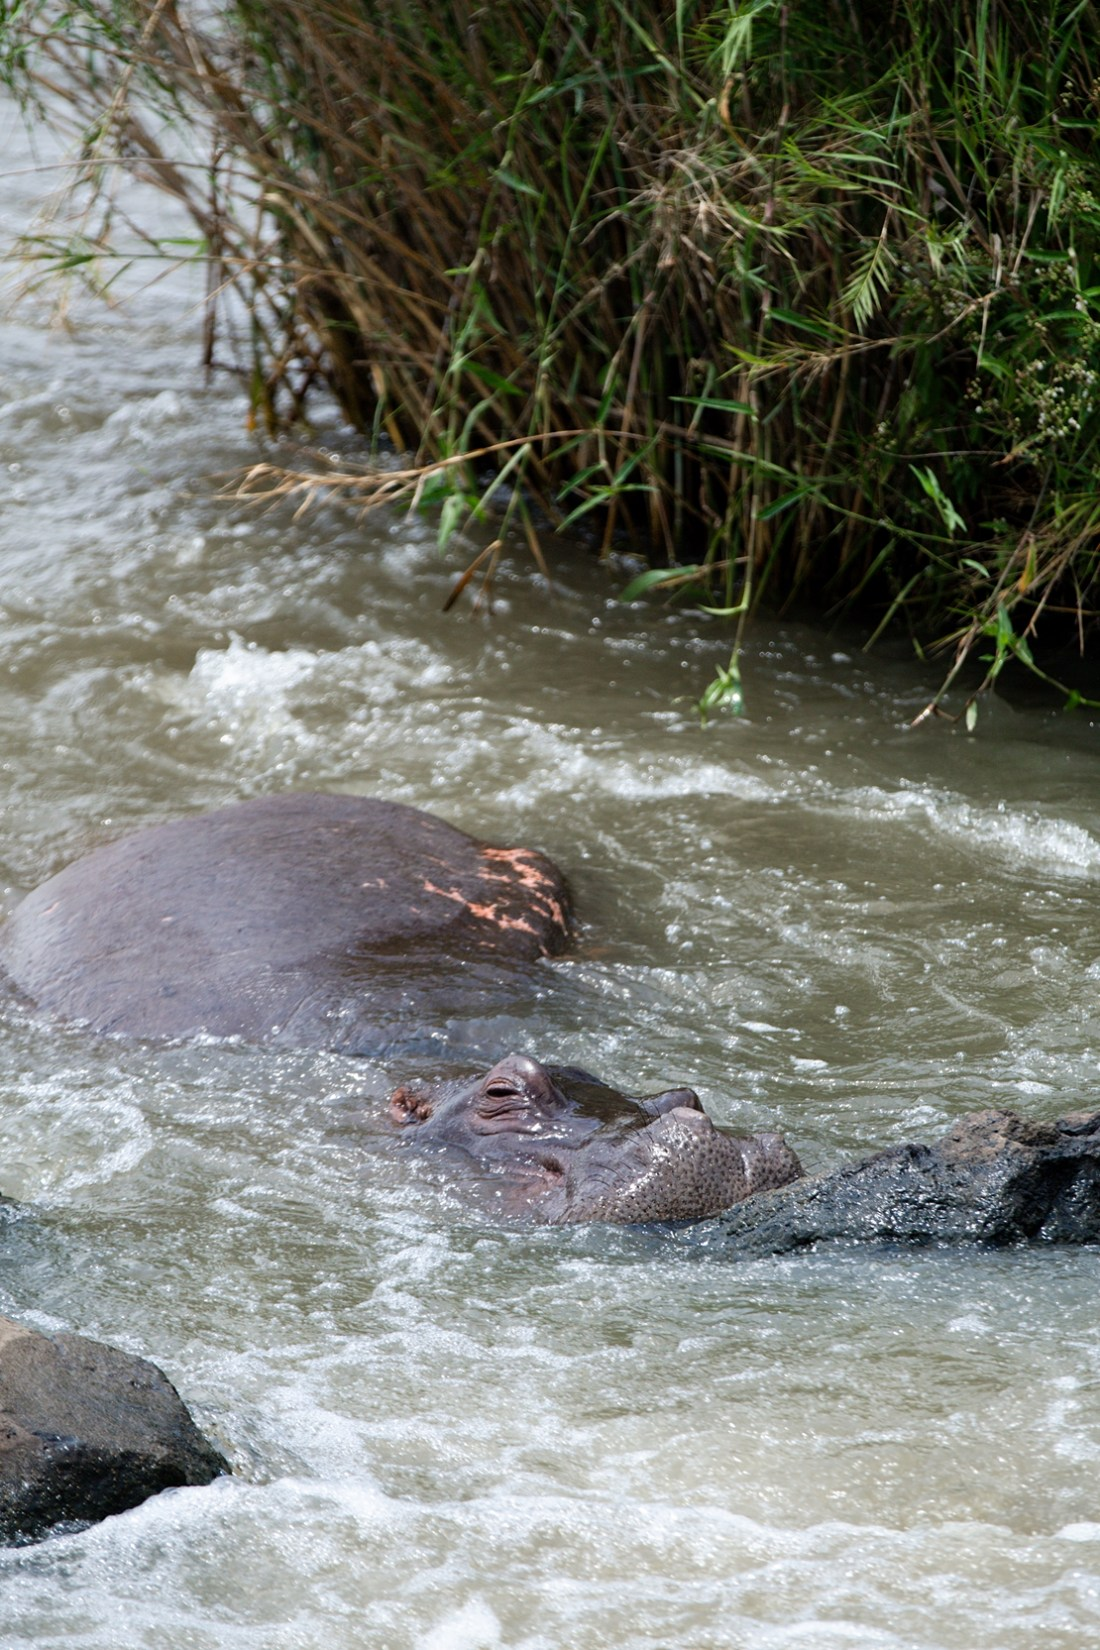 hippo in river at Kruger national park